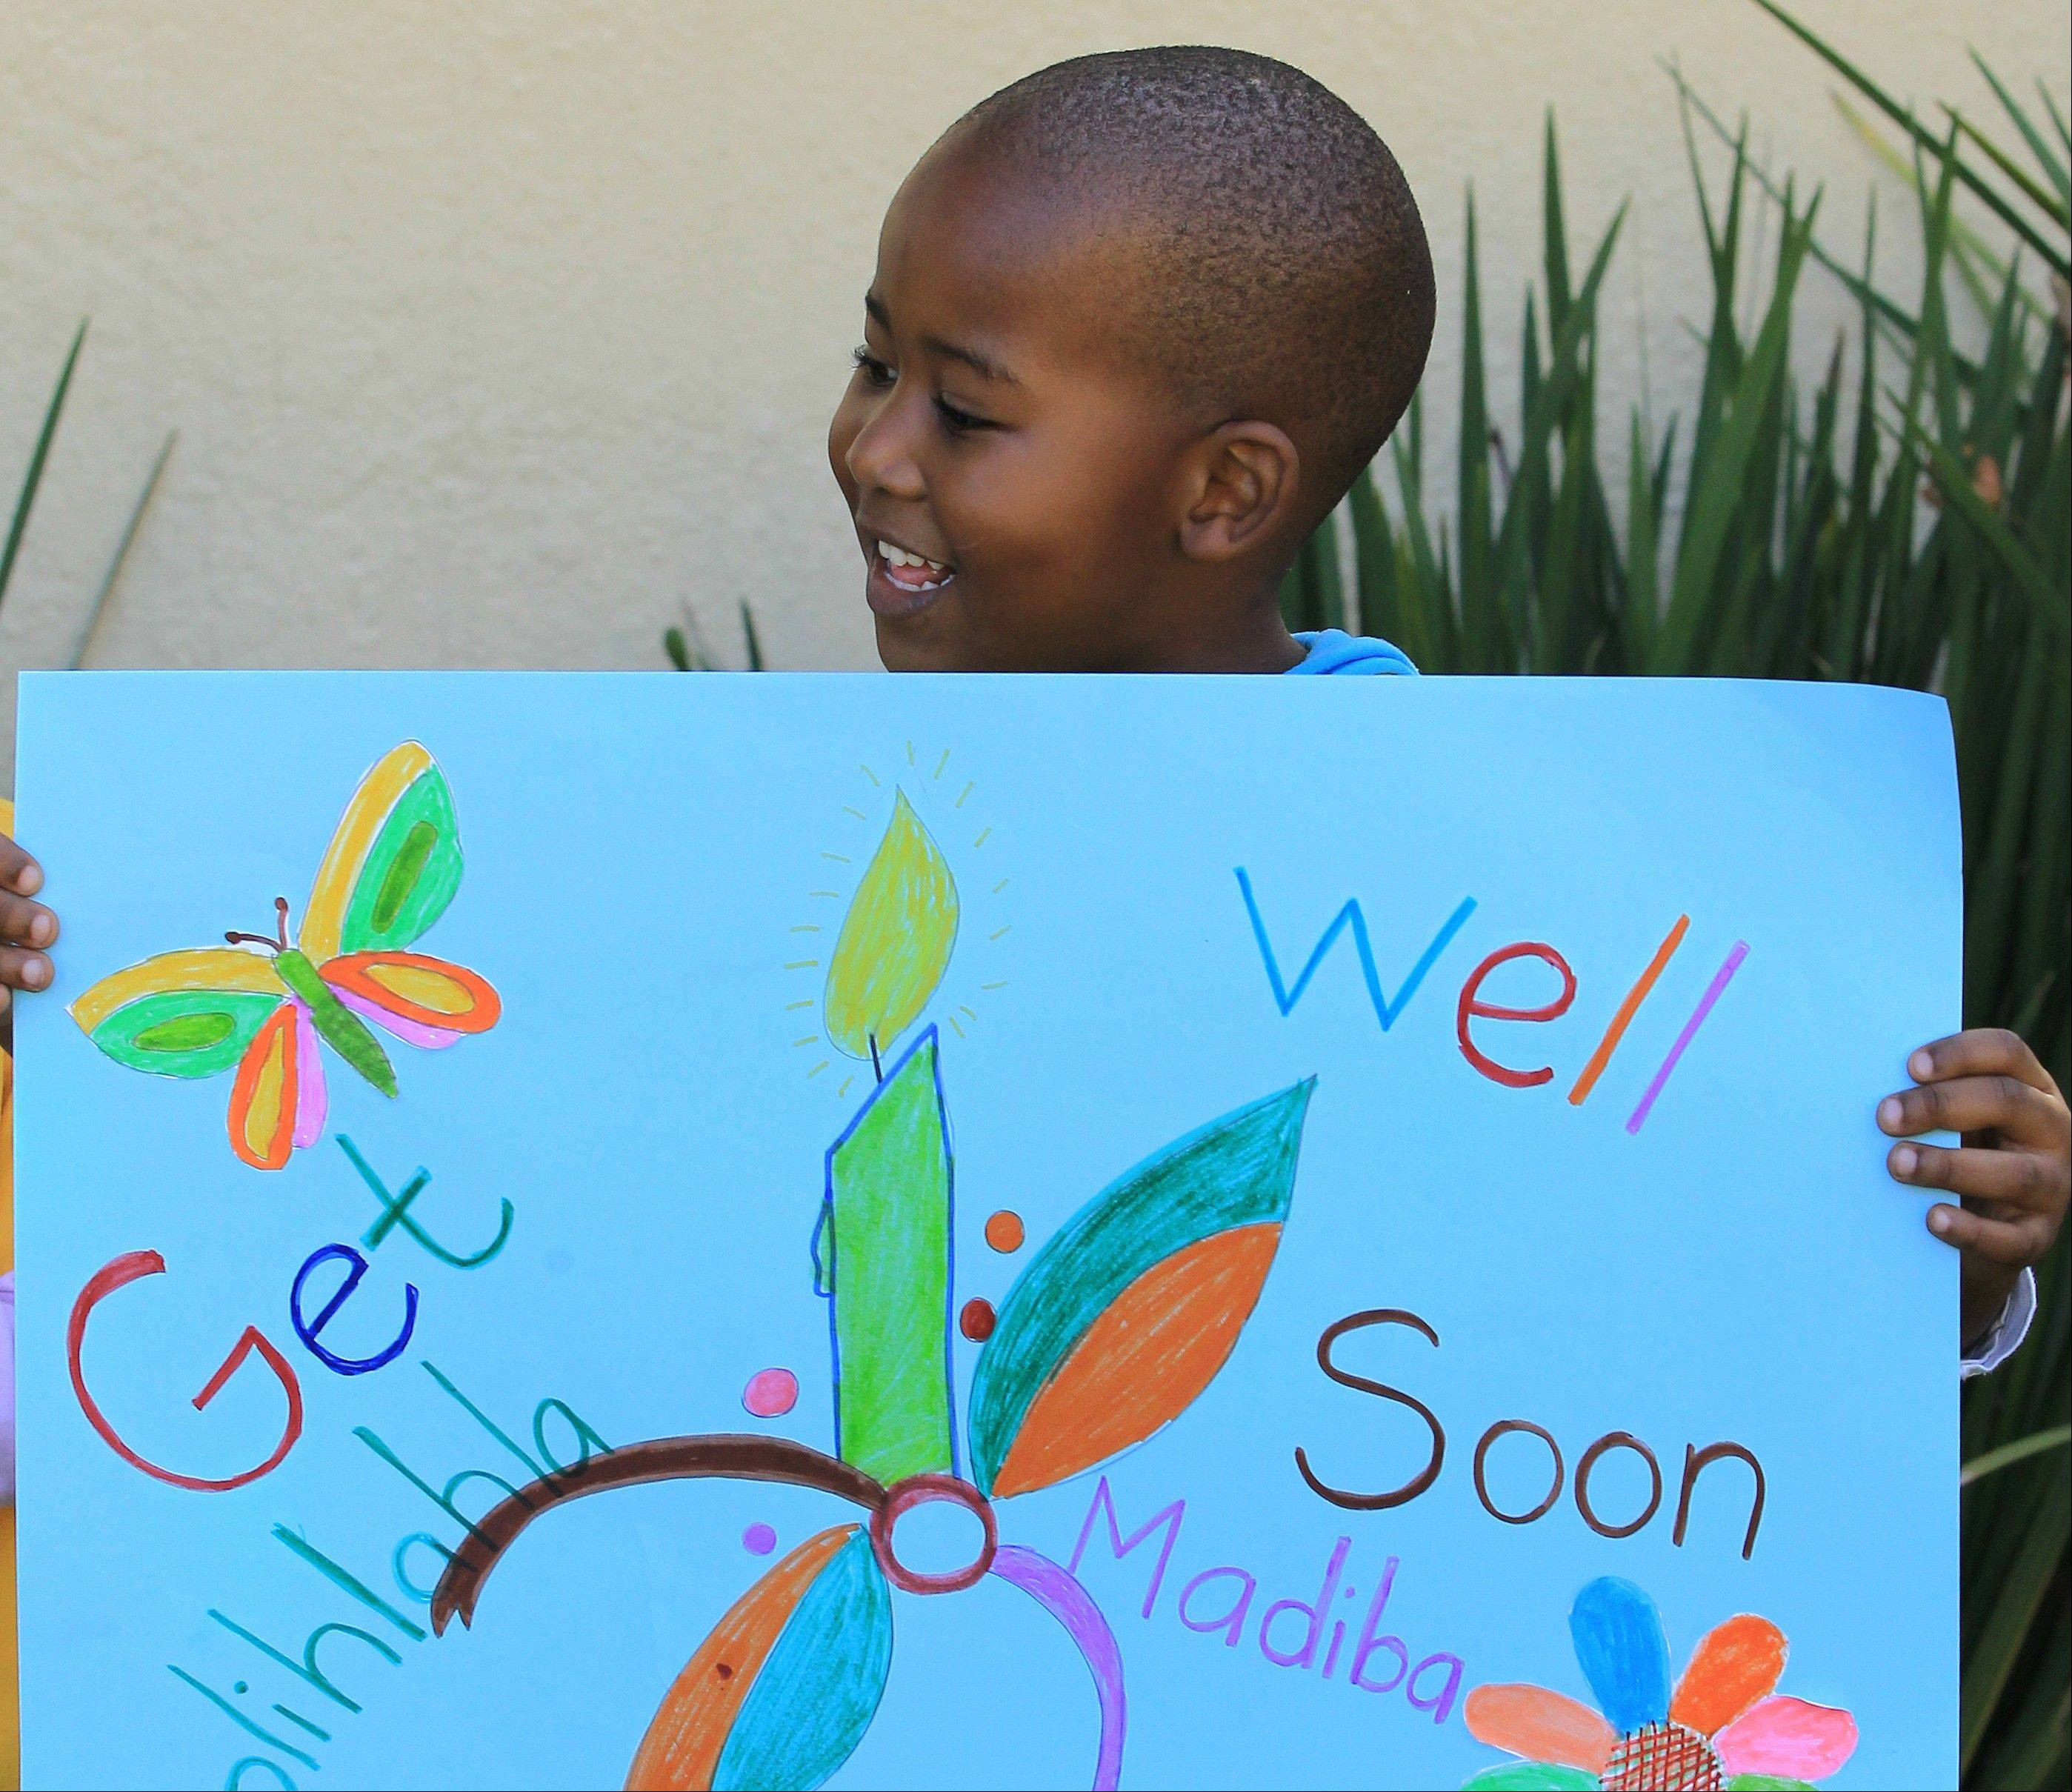 A young boy from Othandweni Community Center holds a placard wishing former South African President Nelson Mandela a prompt recovery outside his residence in Johannesburg, South Africa, Wednesday, June 12, 2013. Mandela, remains in hospital for a fifth day. The 94-year-old icon was hospitalized on Saturday for a recurring lung infection.